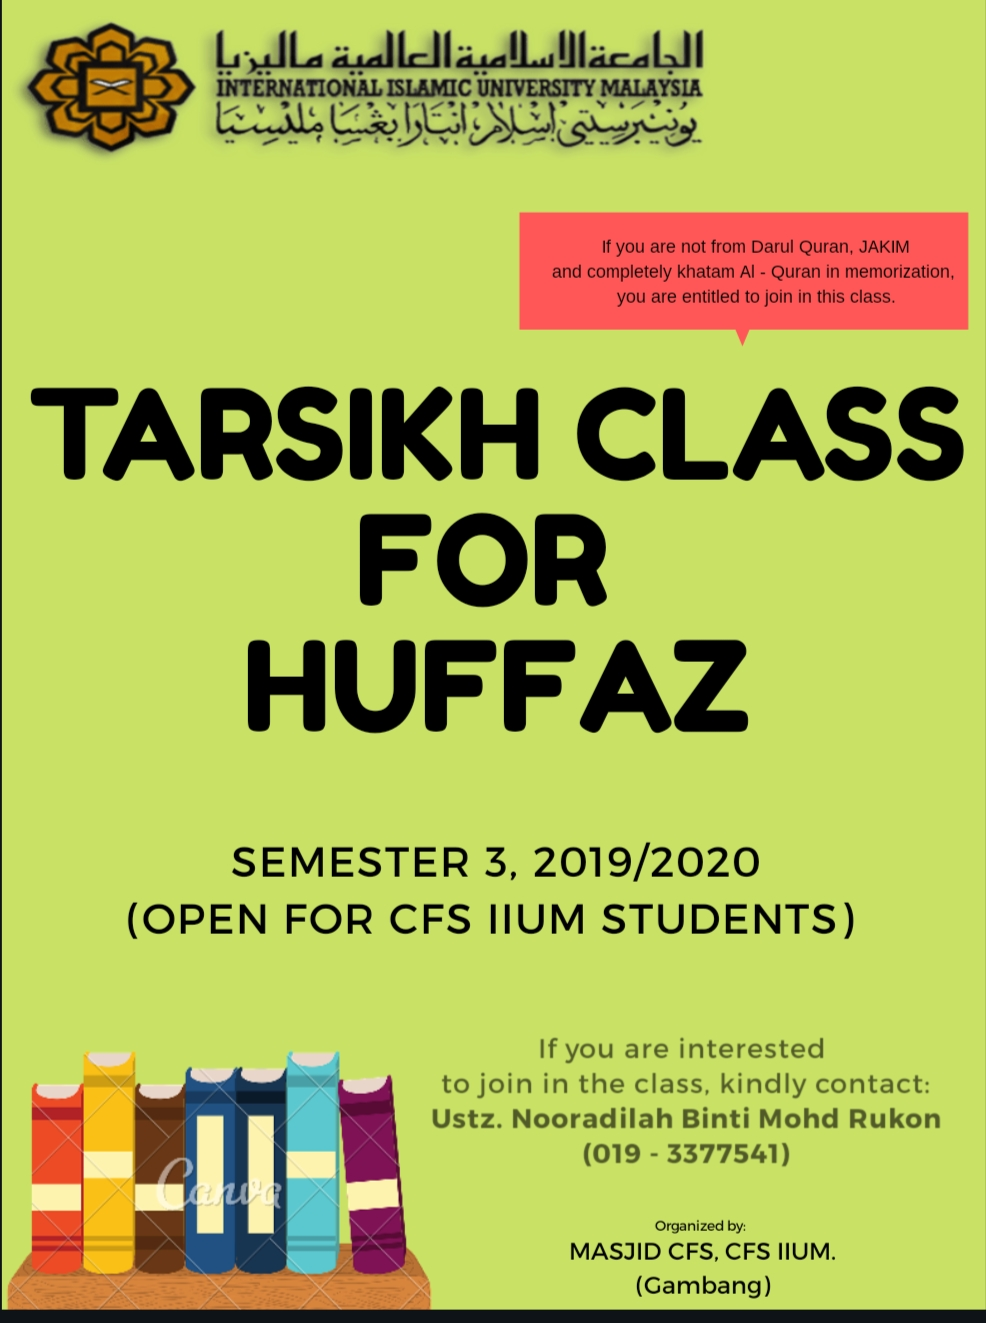 TARSIKH CLASS FOR CFS STUDENTS SEMESTER 3, 2019/2020